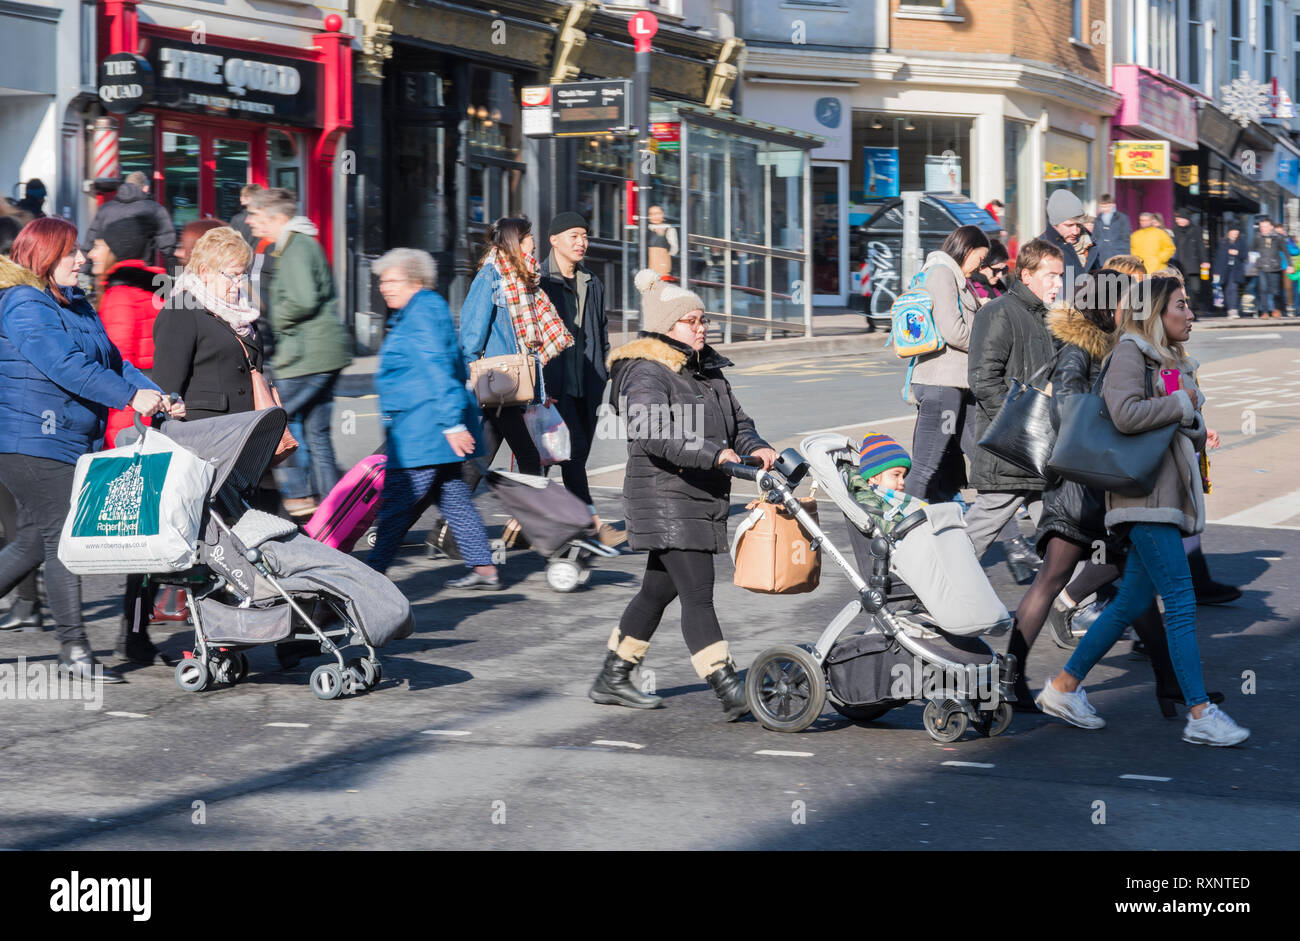 People pushing pushchairs with children across a busy road in Brighton, East Sussex, England, UK. People crossing busy roads. - Stock Image